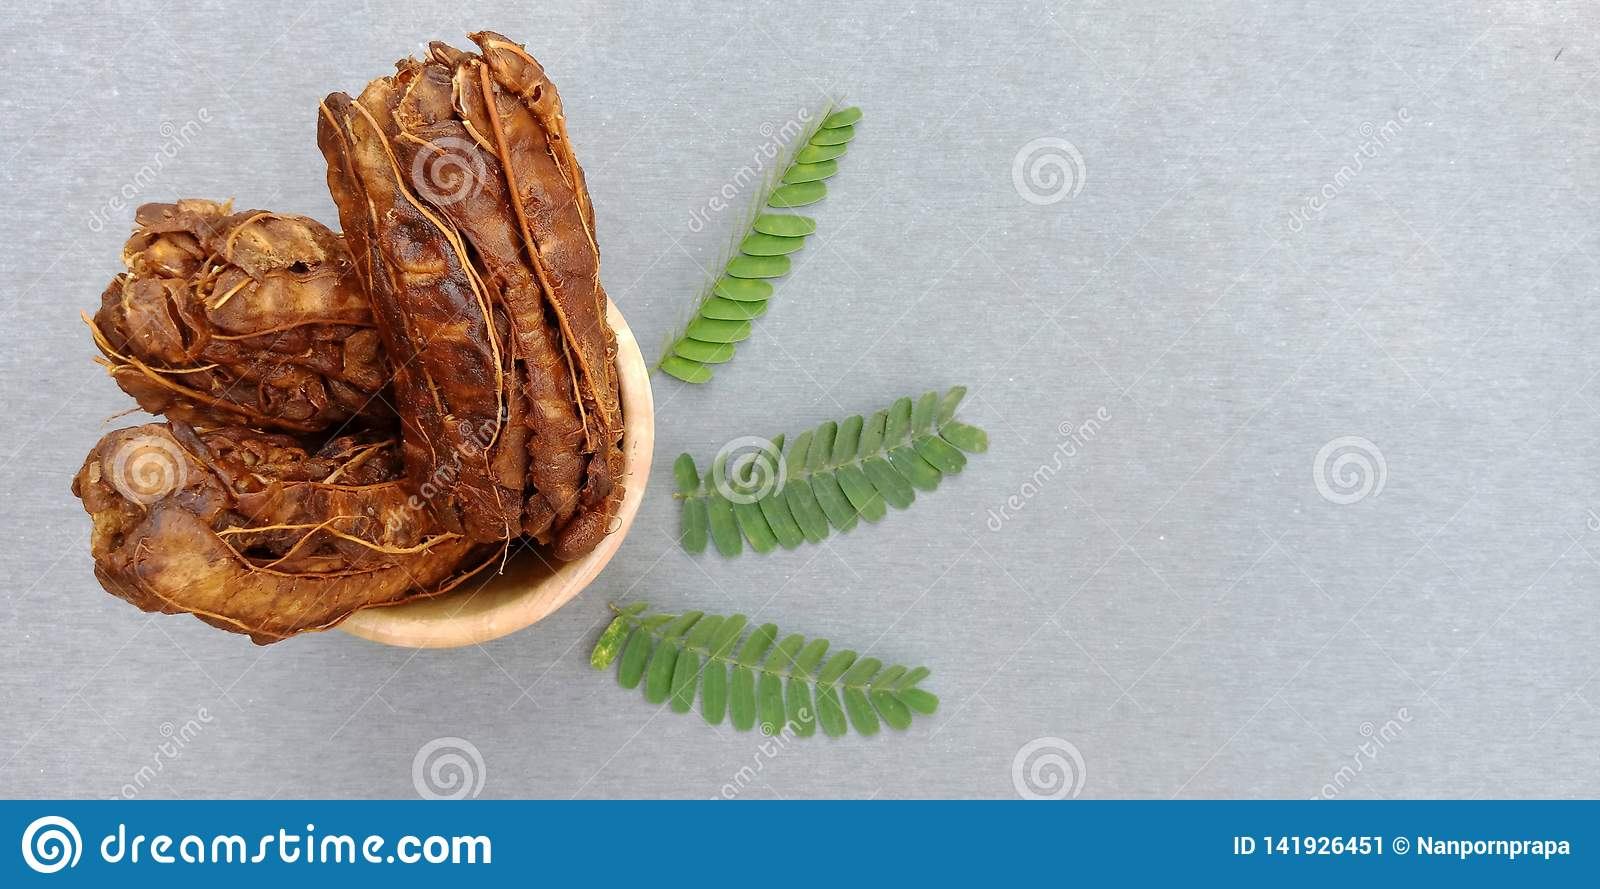 The group of dried tamarind